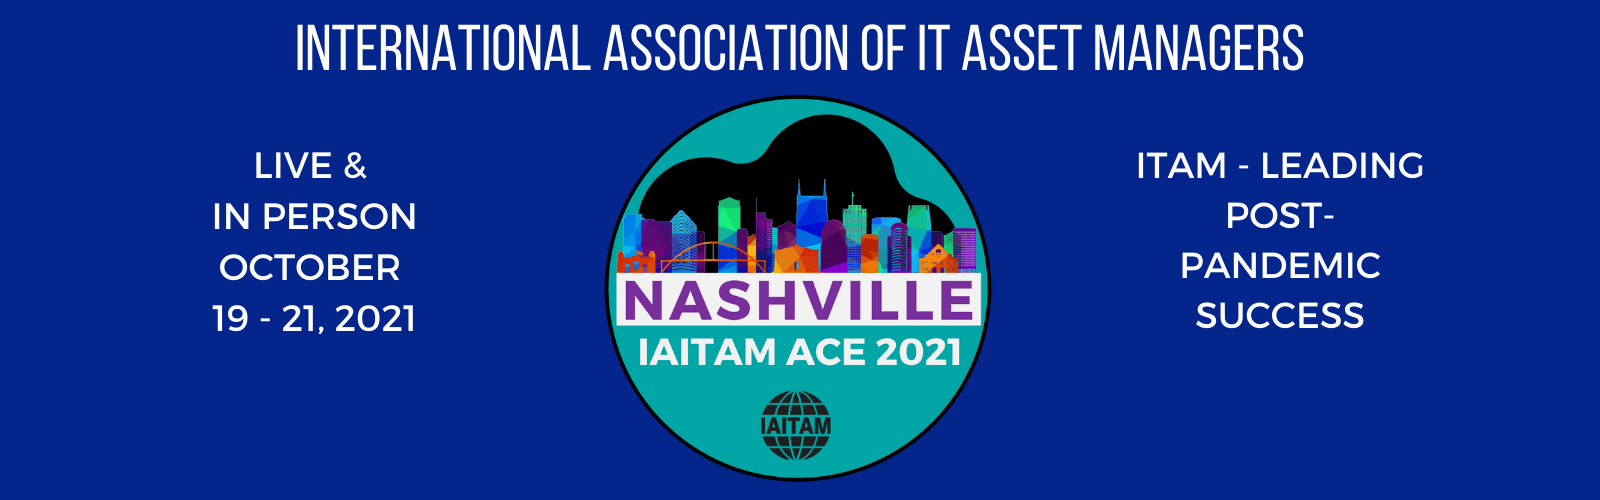 Join us at ACE Nashville 2021, the ITAM event of the year